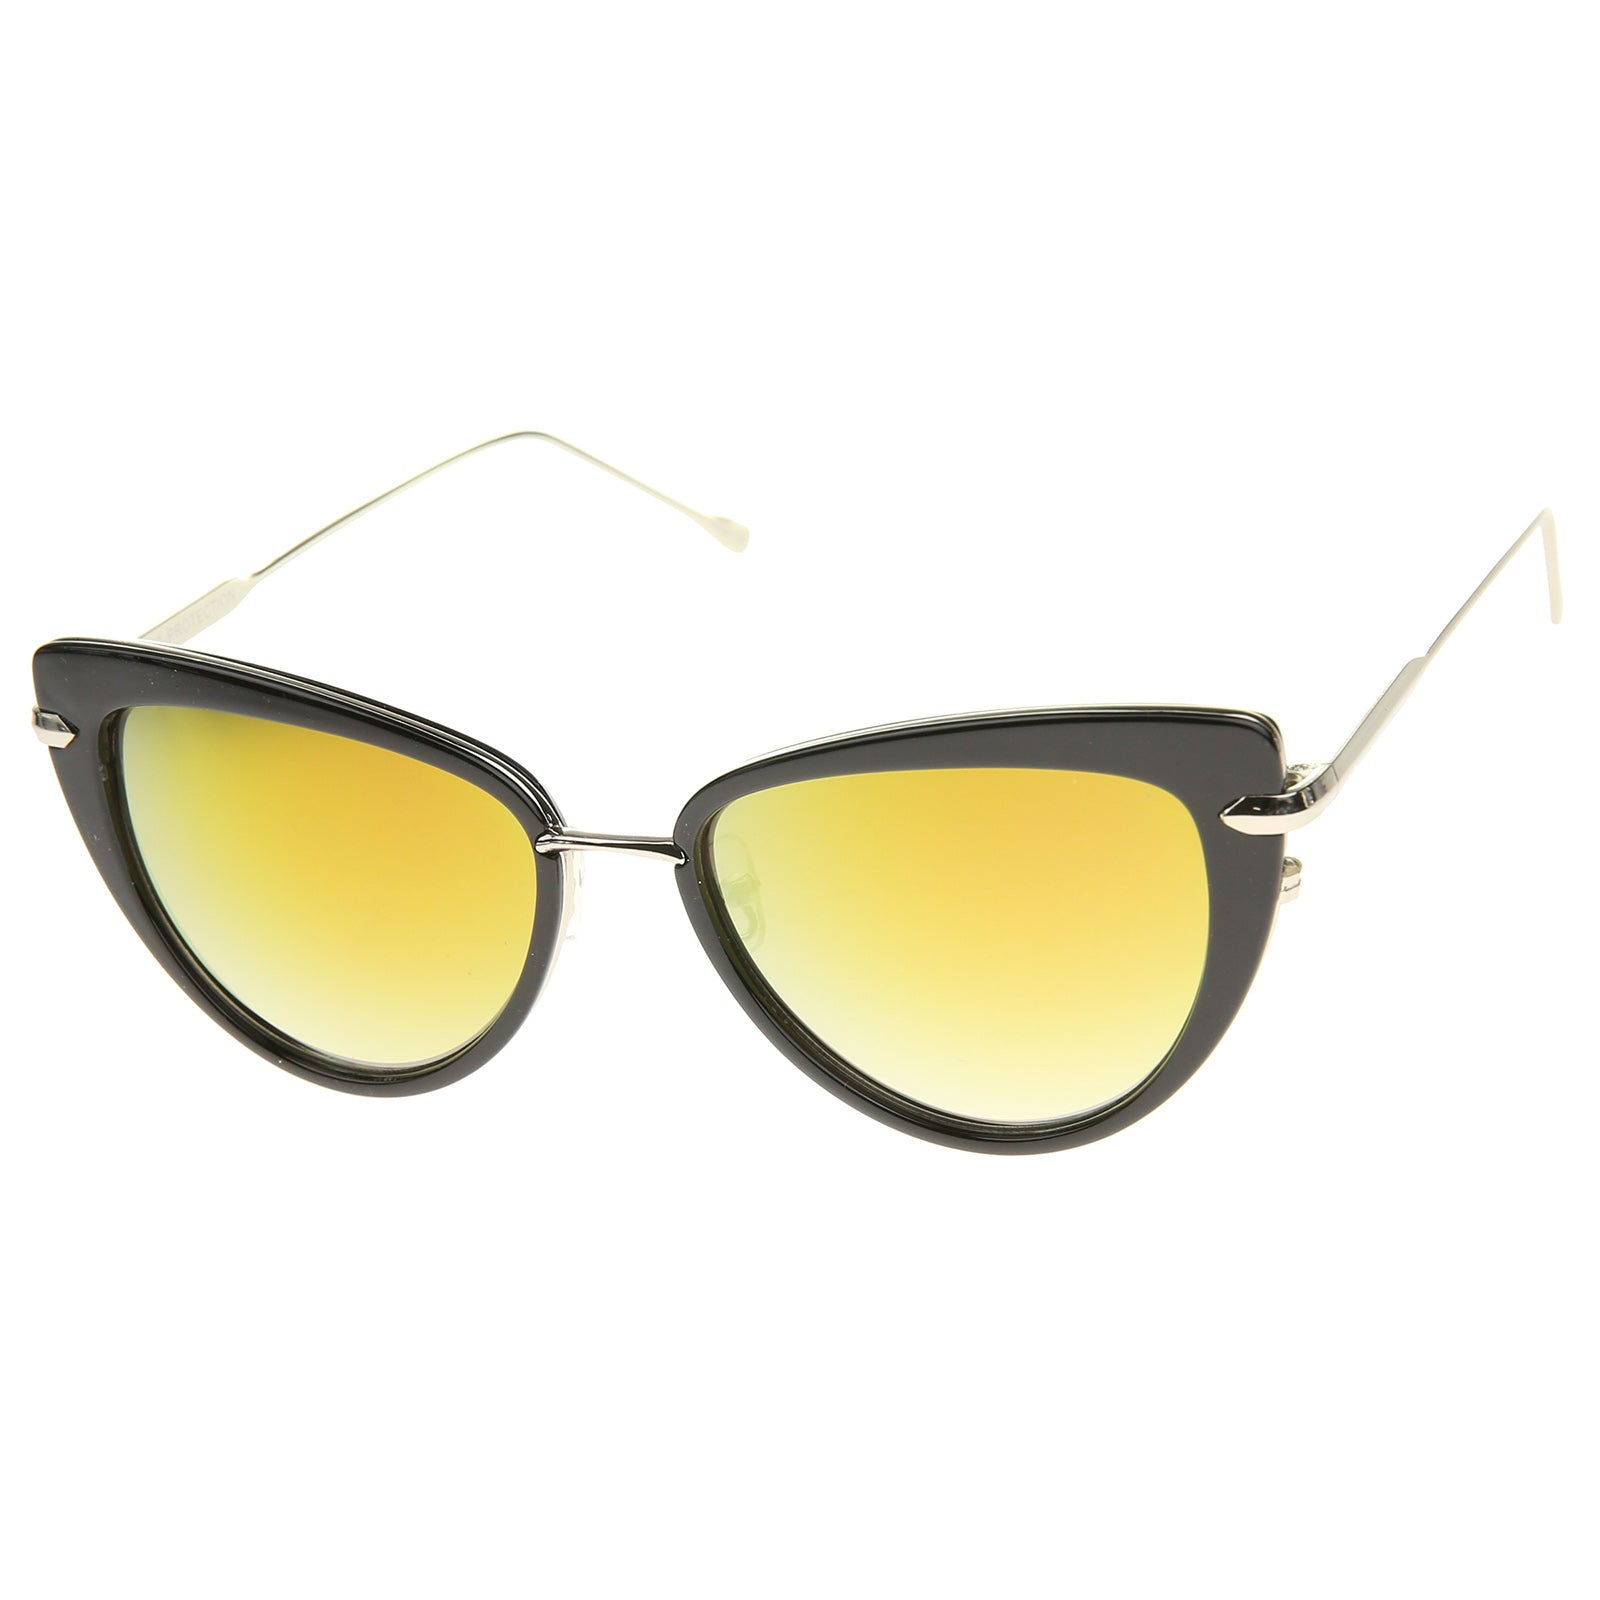 Women's High Fashion Metal Temple Super Cat Eye Sunglasses 55mm - sunglass.la - 18